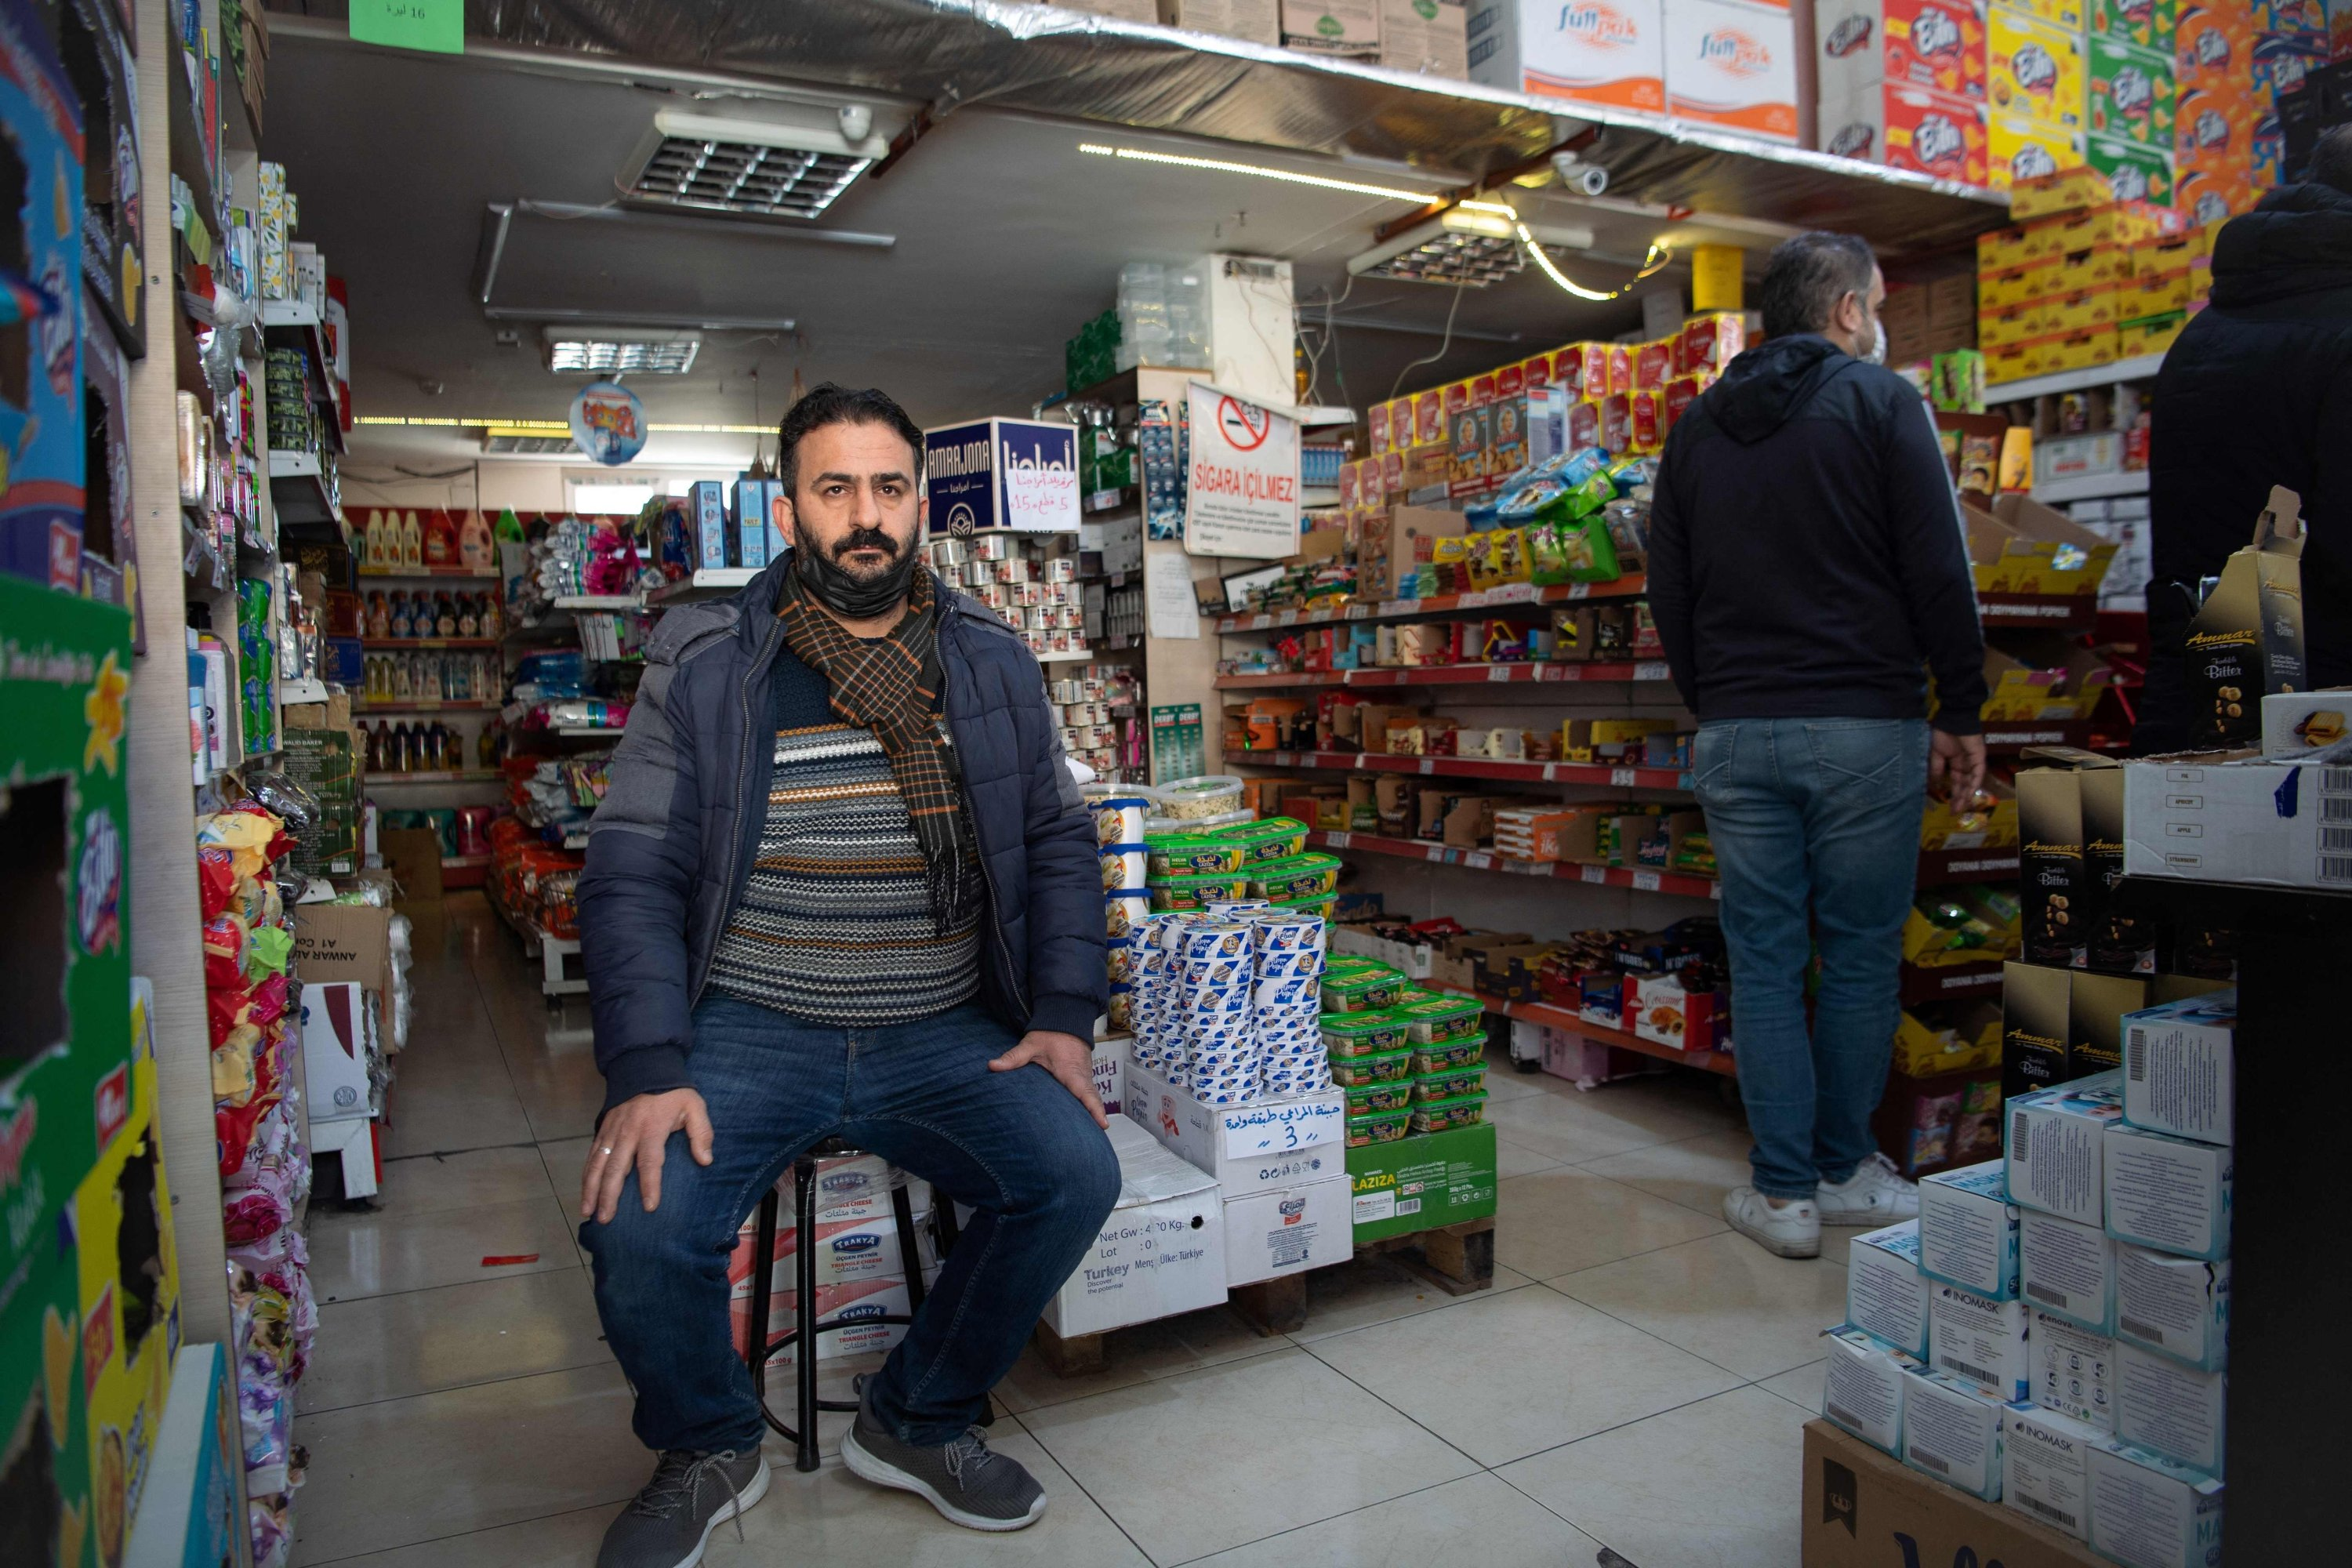 Shopkeeper Khader al-Houssein, aged 41, poses during an interview in Gaziantep, Turkey, Feb. 25, 2021. (AFP)